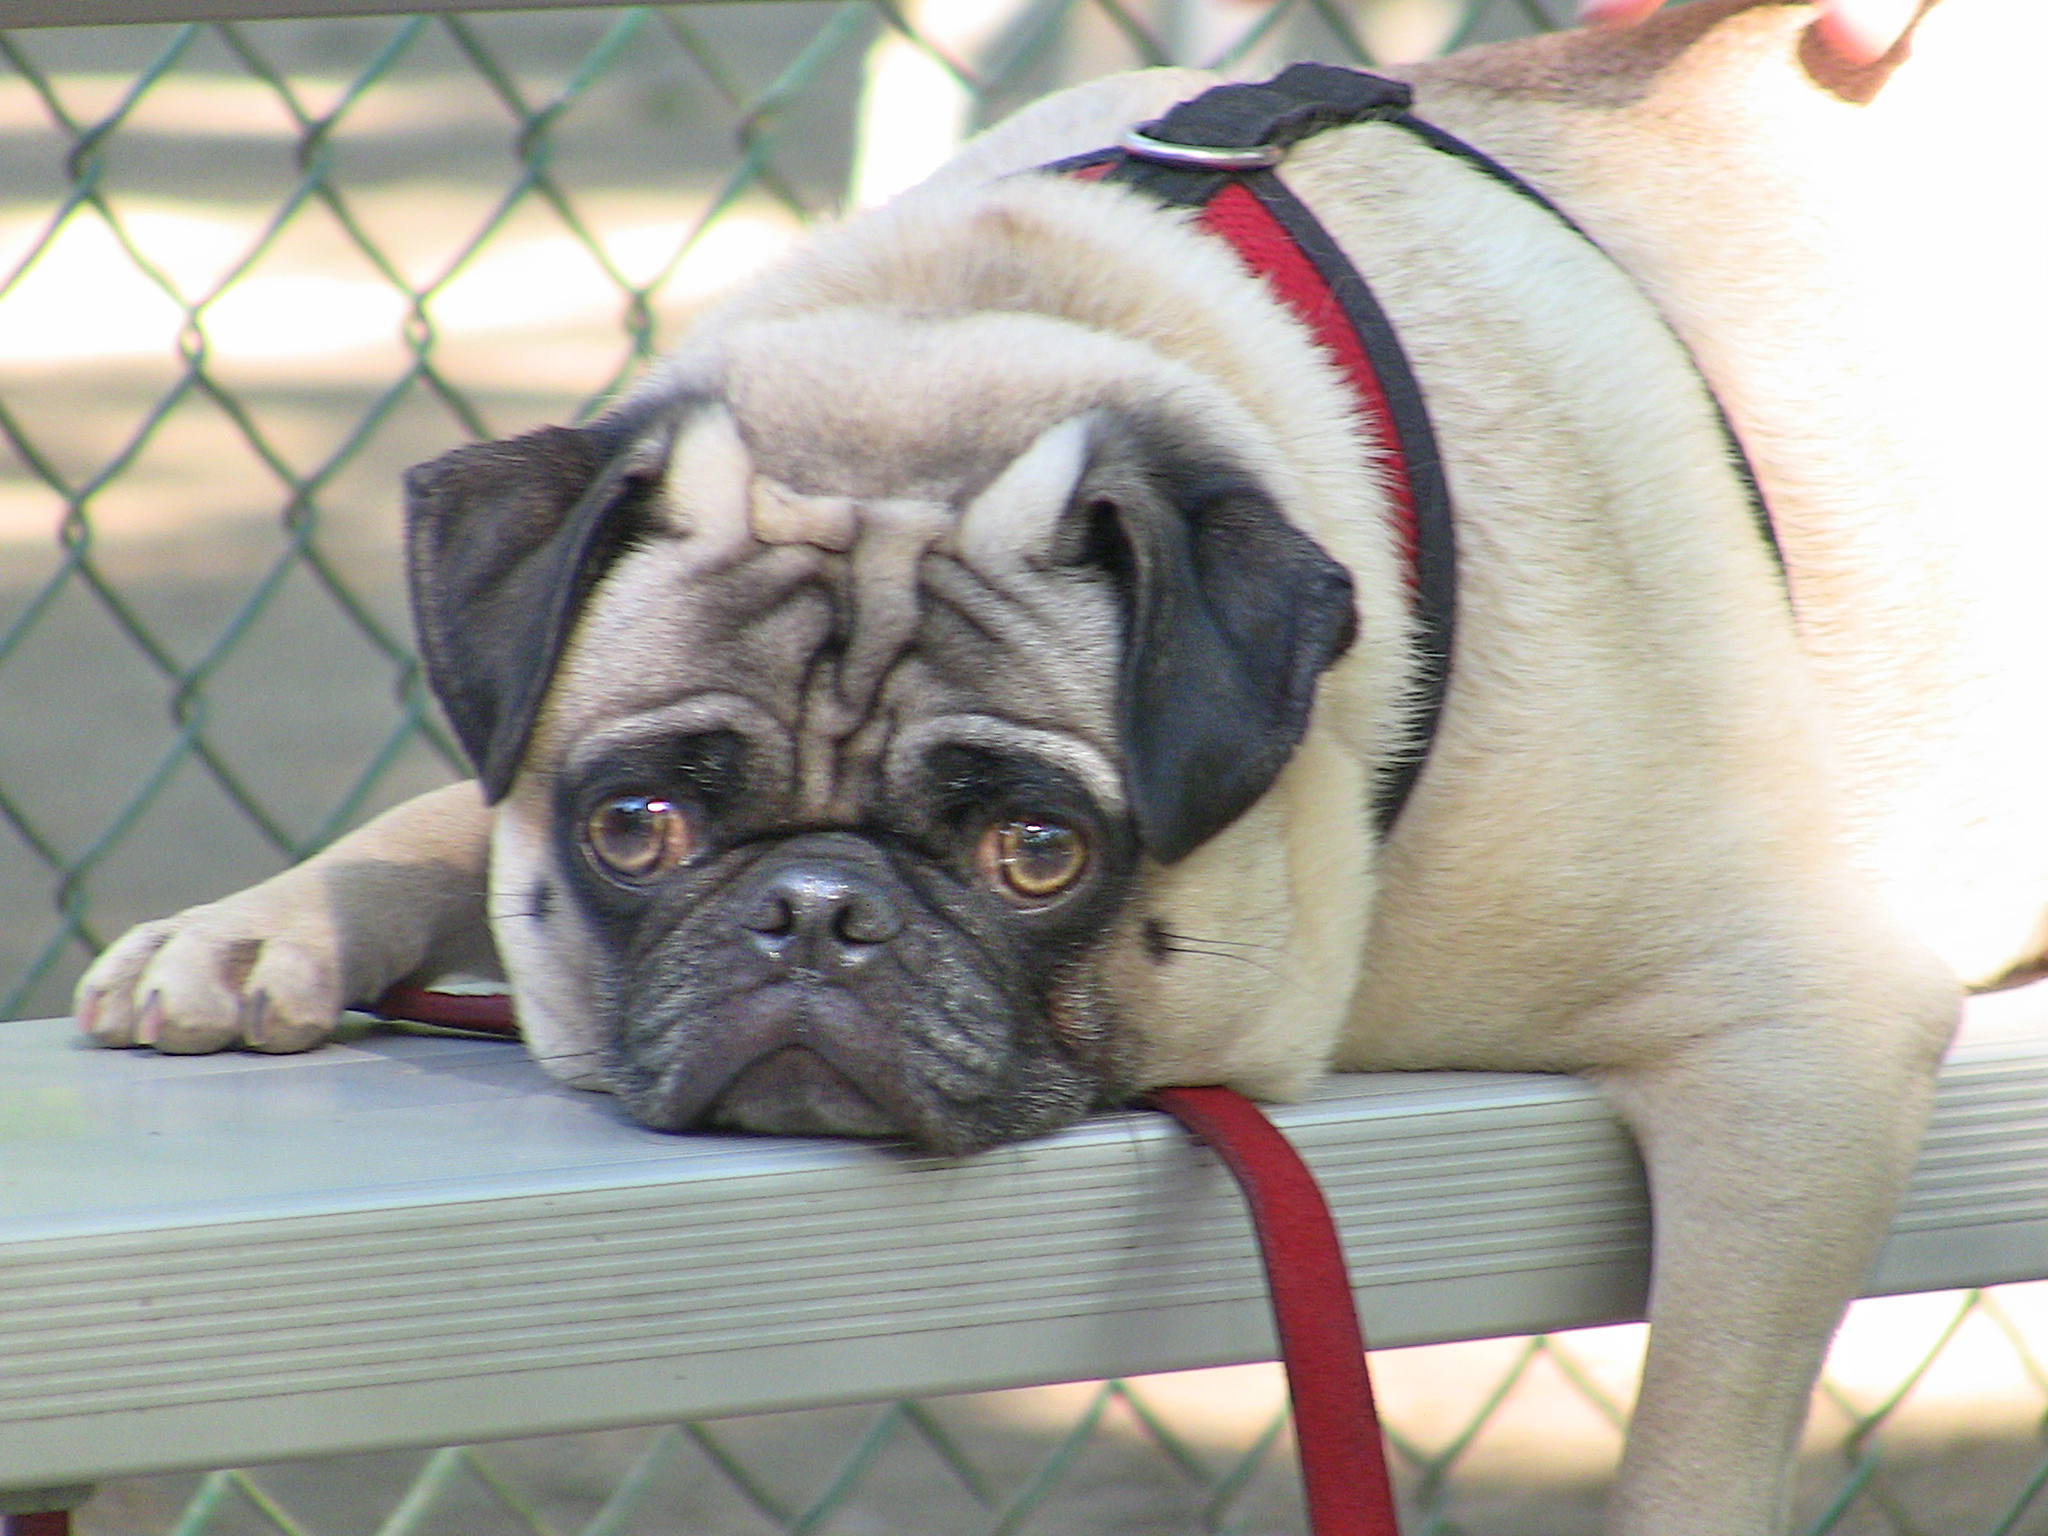 In Pug on September 18, 2010 at 6:49 am